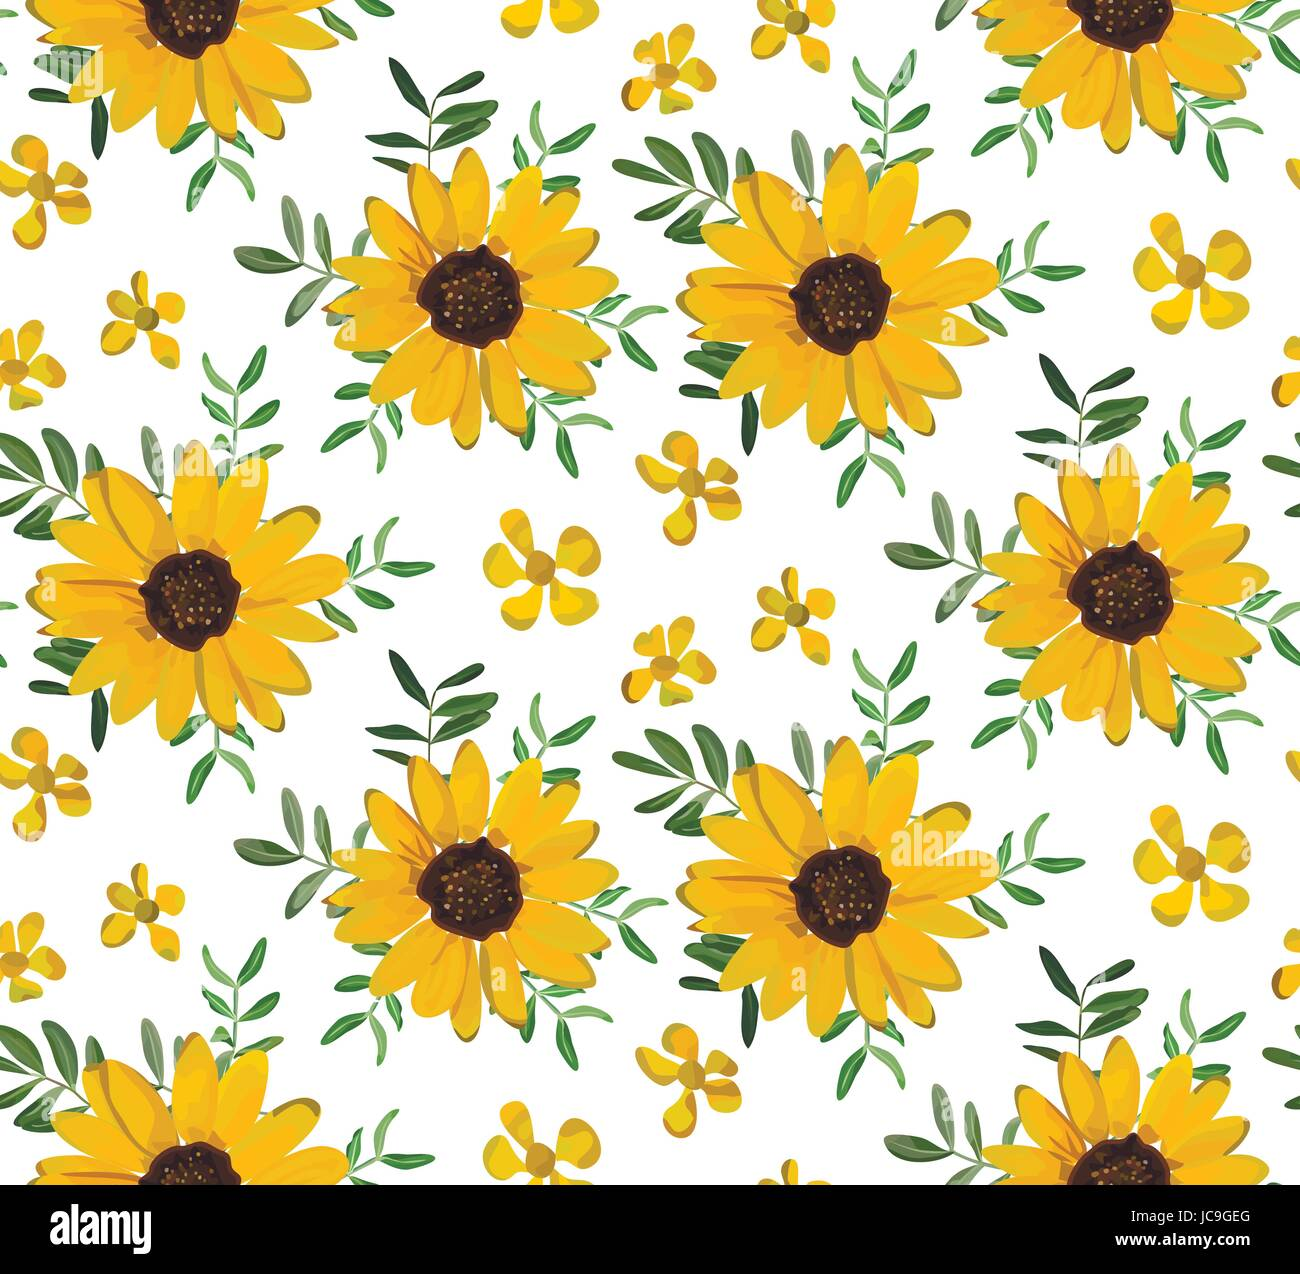 Vintage Yellow Sunflower tiny beautiful soft flowers, leaves background, seamless wallpaper botanical floral design watercolor illustration for textil